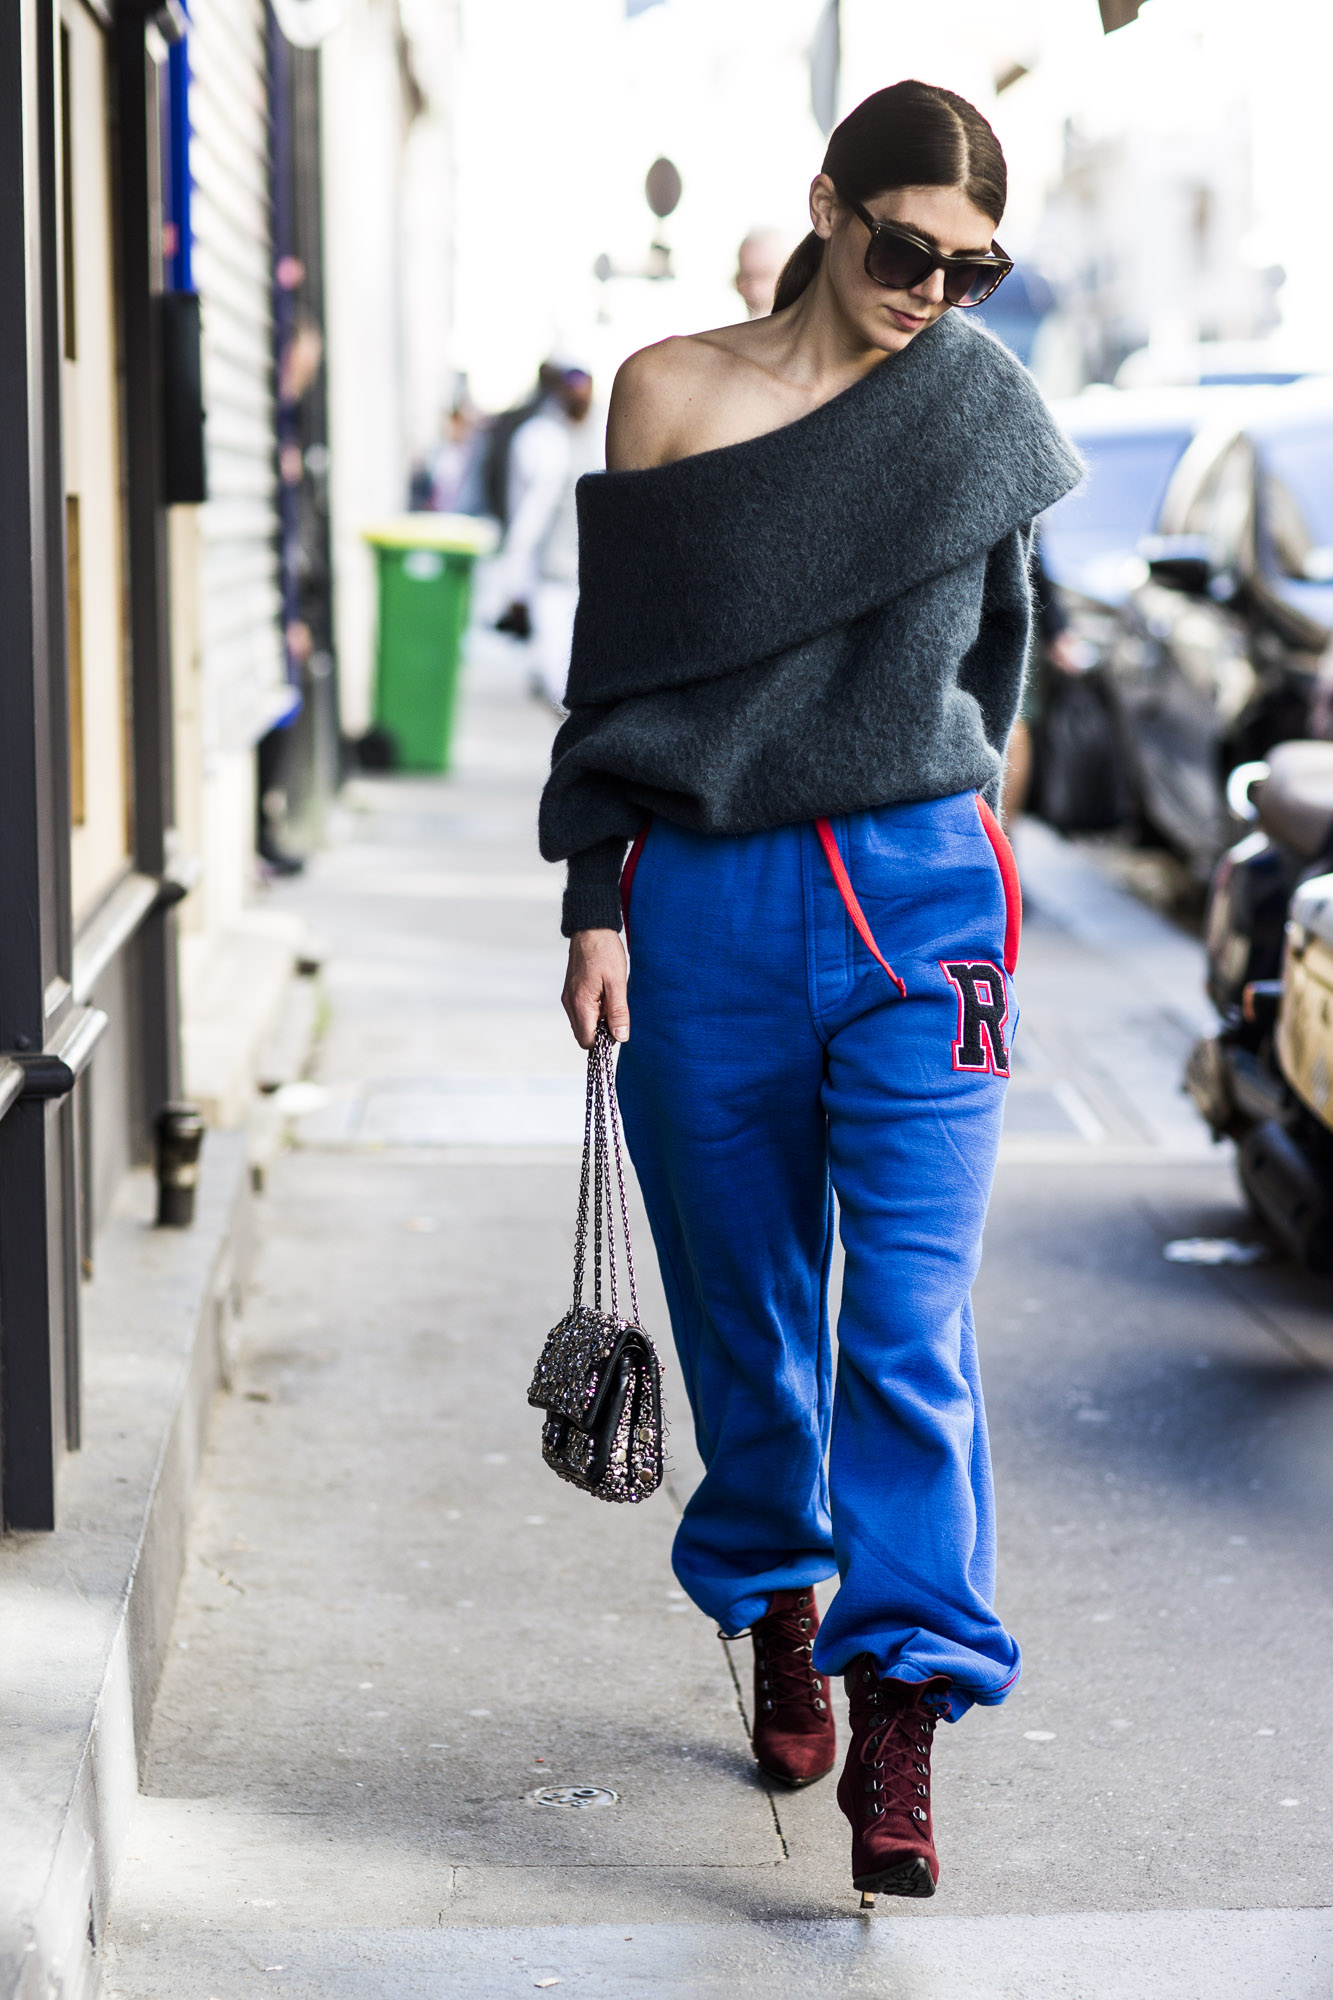 ParisFW_SS2016_day1_sandrasemburg-20150930-3607.jpeg